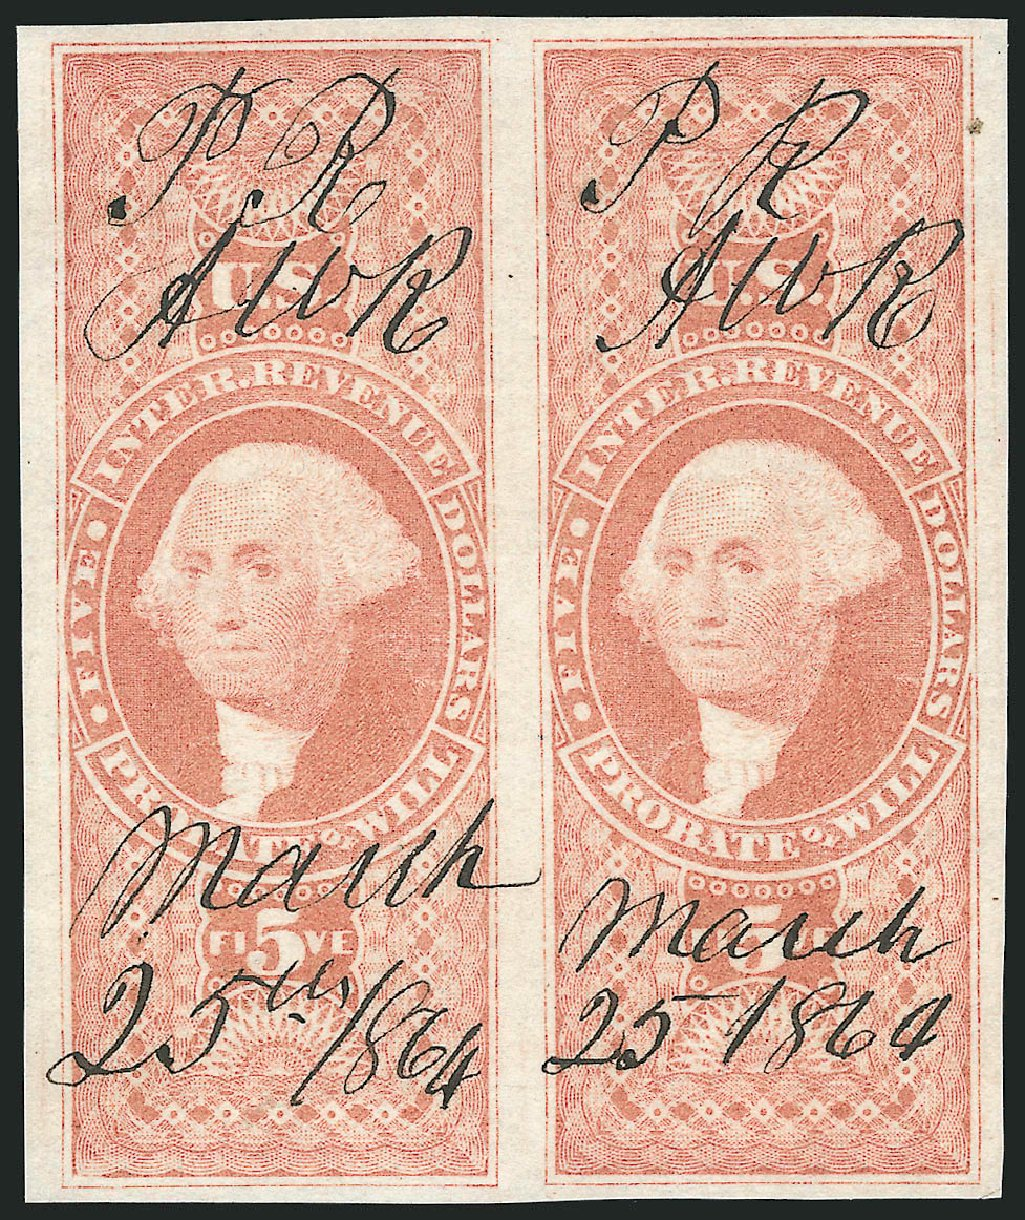 Price of US Stamps Scott Catalogue # R92 - US$5.00 1862 Revenue Probate of Will. Robert Siegel Auction Galleries, Dec 2014, Sale 1089, Lot 259